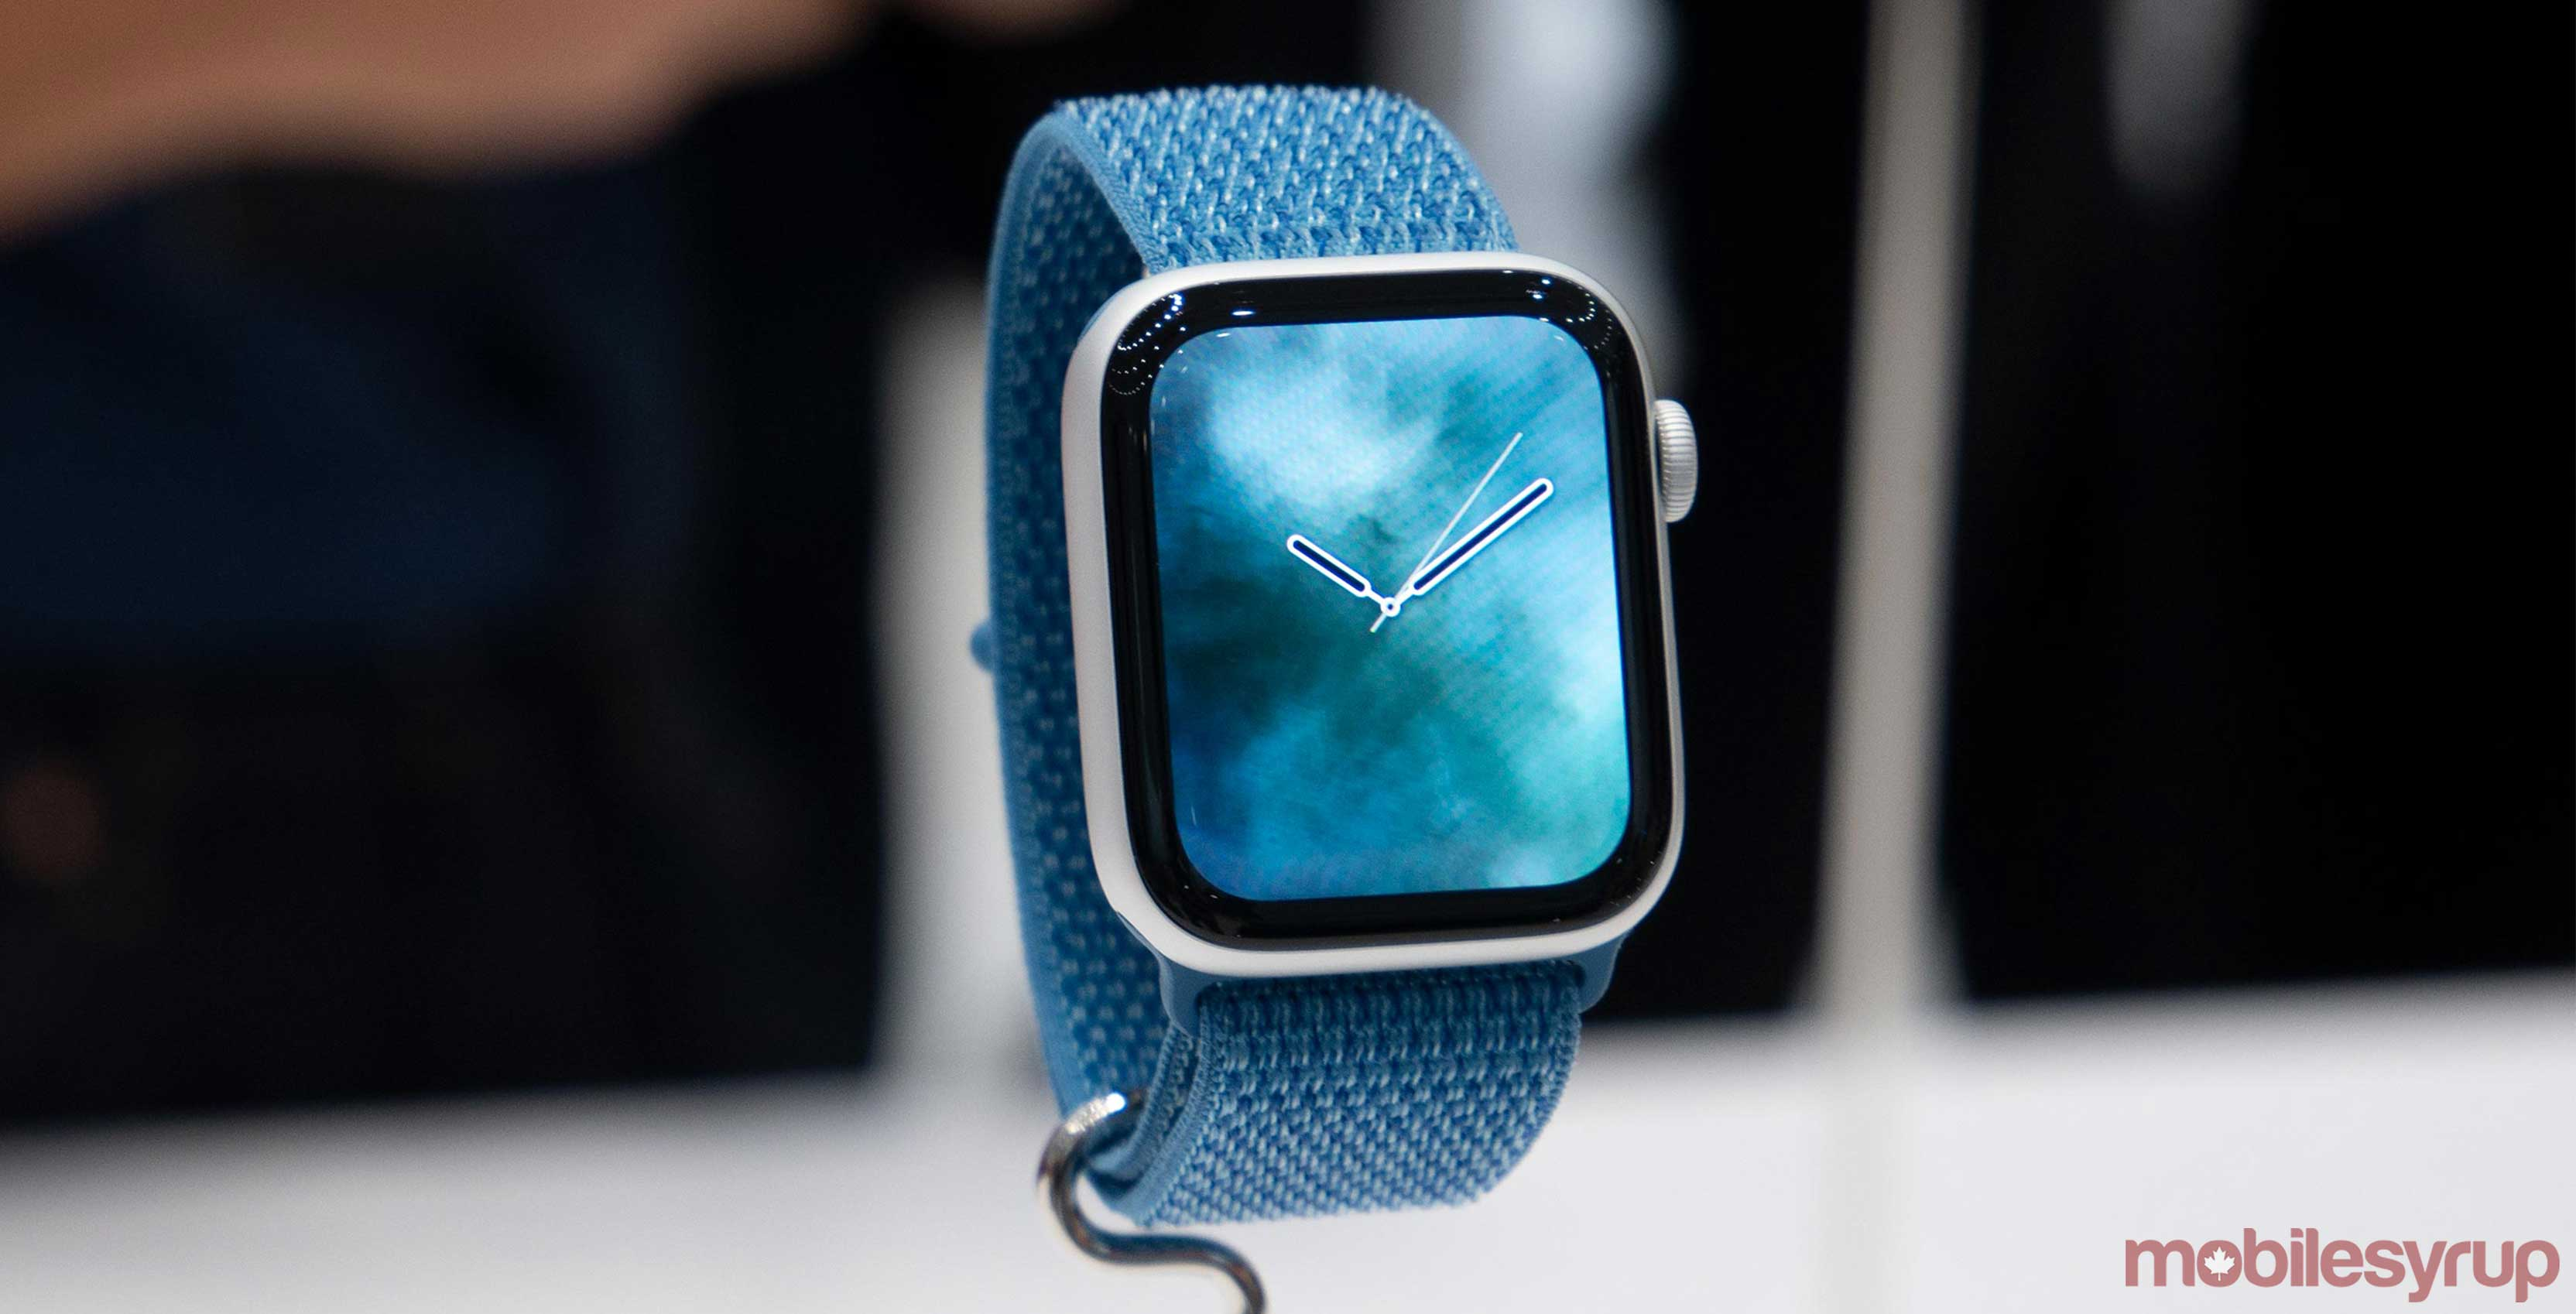 Apple Watch Series 5 to launch this fall with new OLED display: analyst